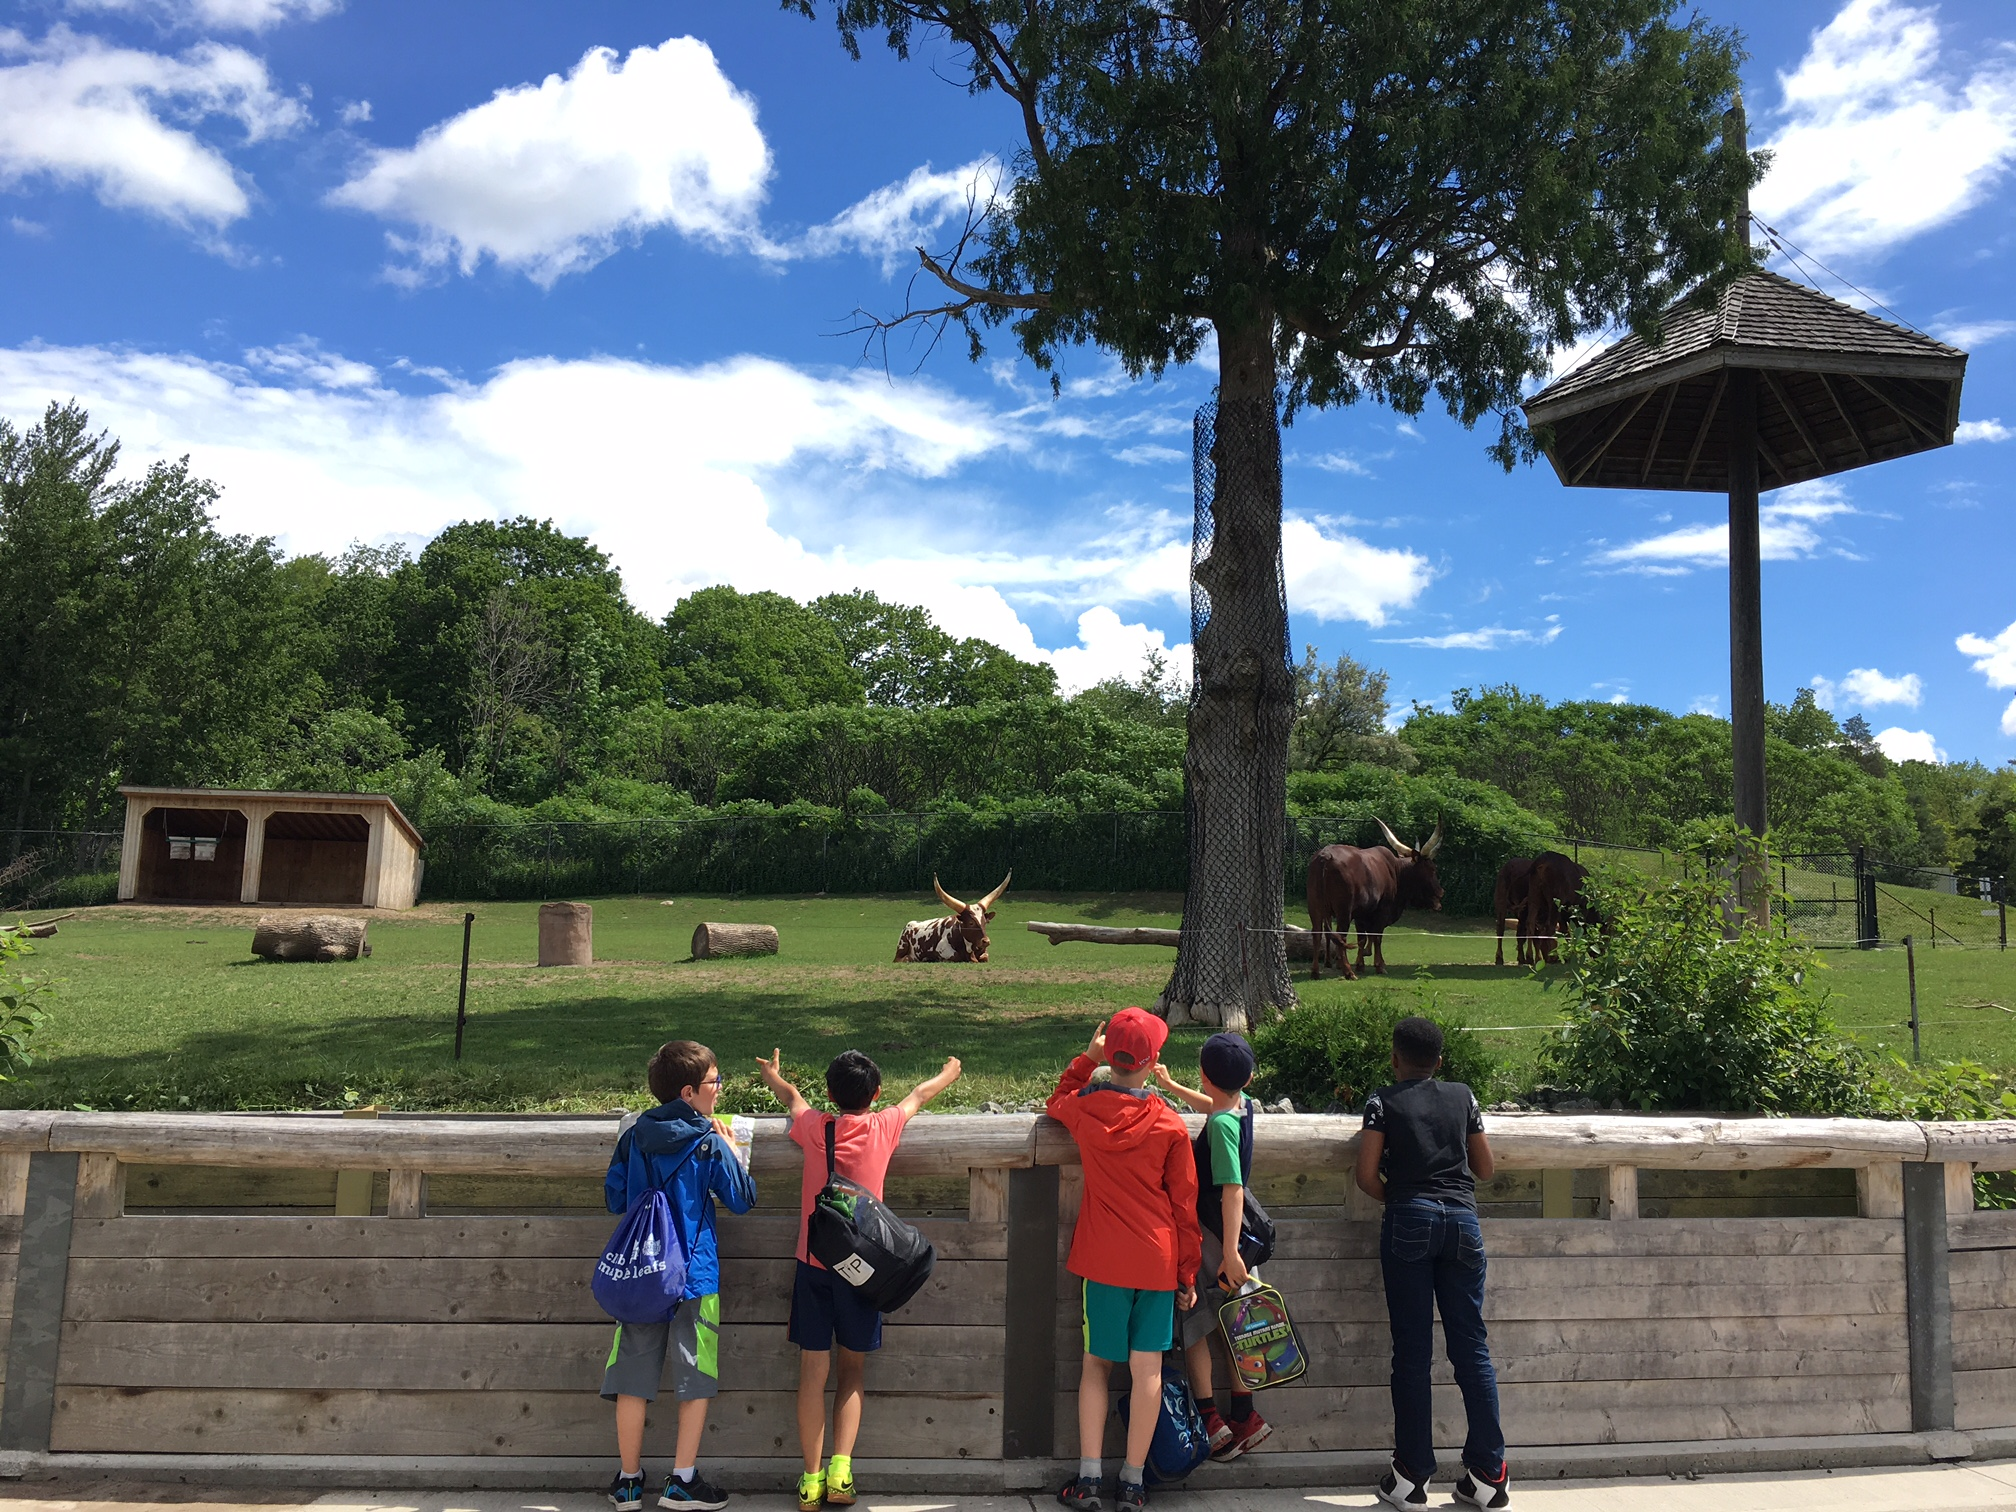 a visit to the zoo Award-winning reading solution with thousands of leveled readers, lesson plans, worksheets and assessments to teach guided reading, reading proficiency and comprehension to k-5 students.